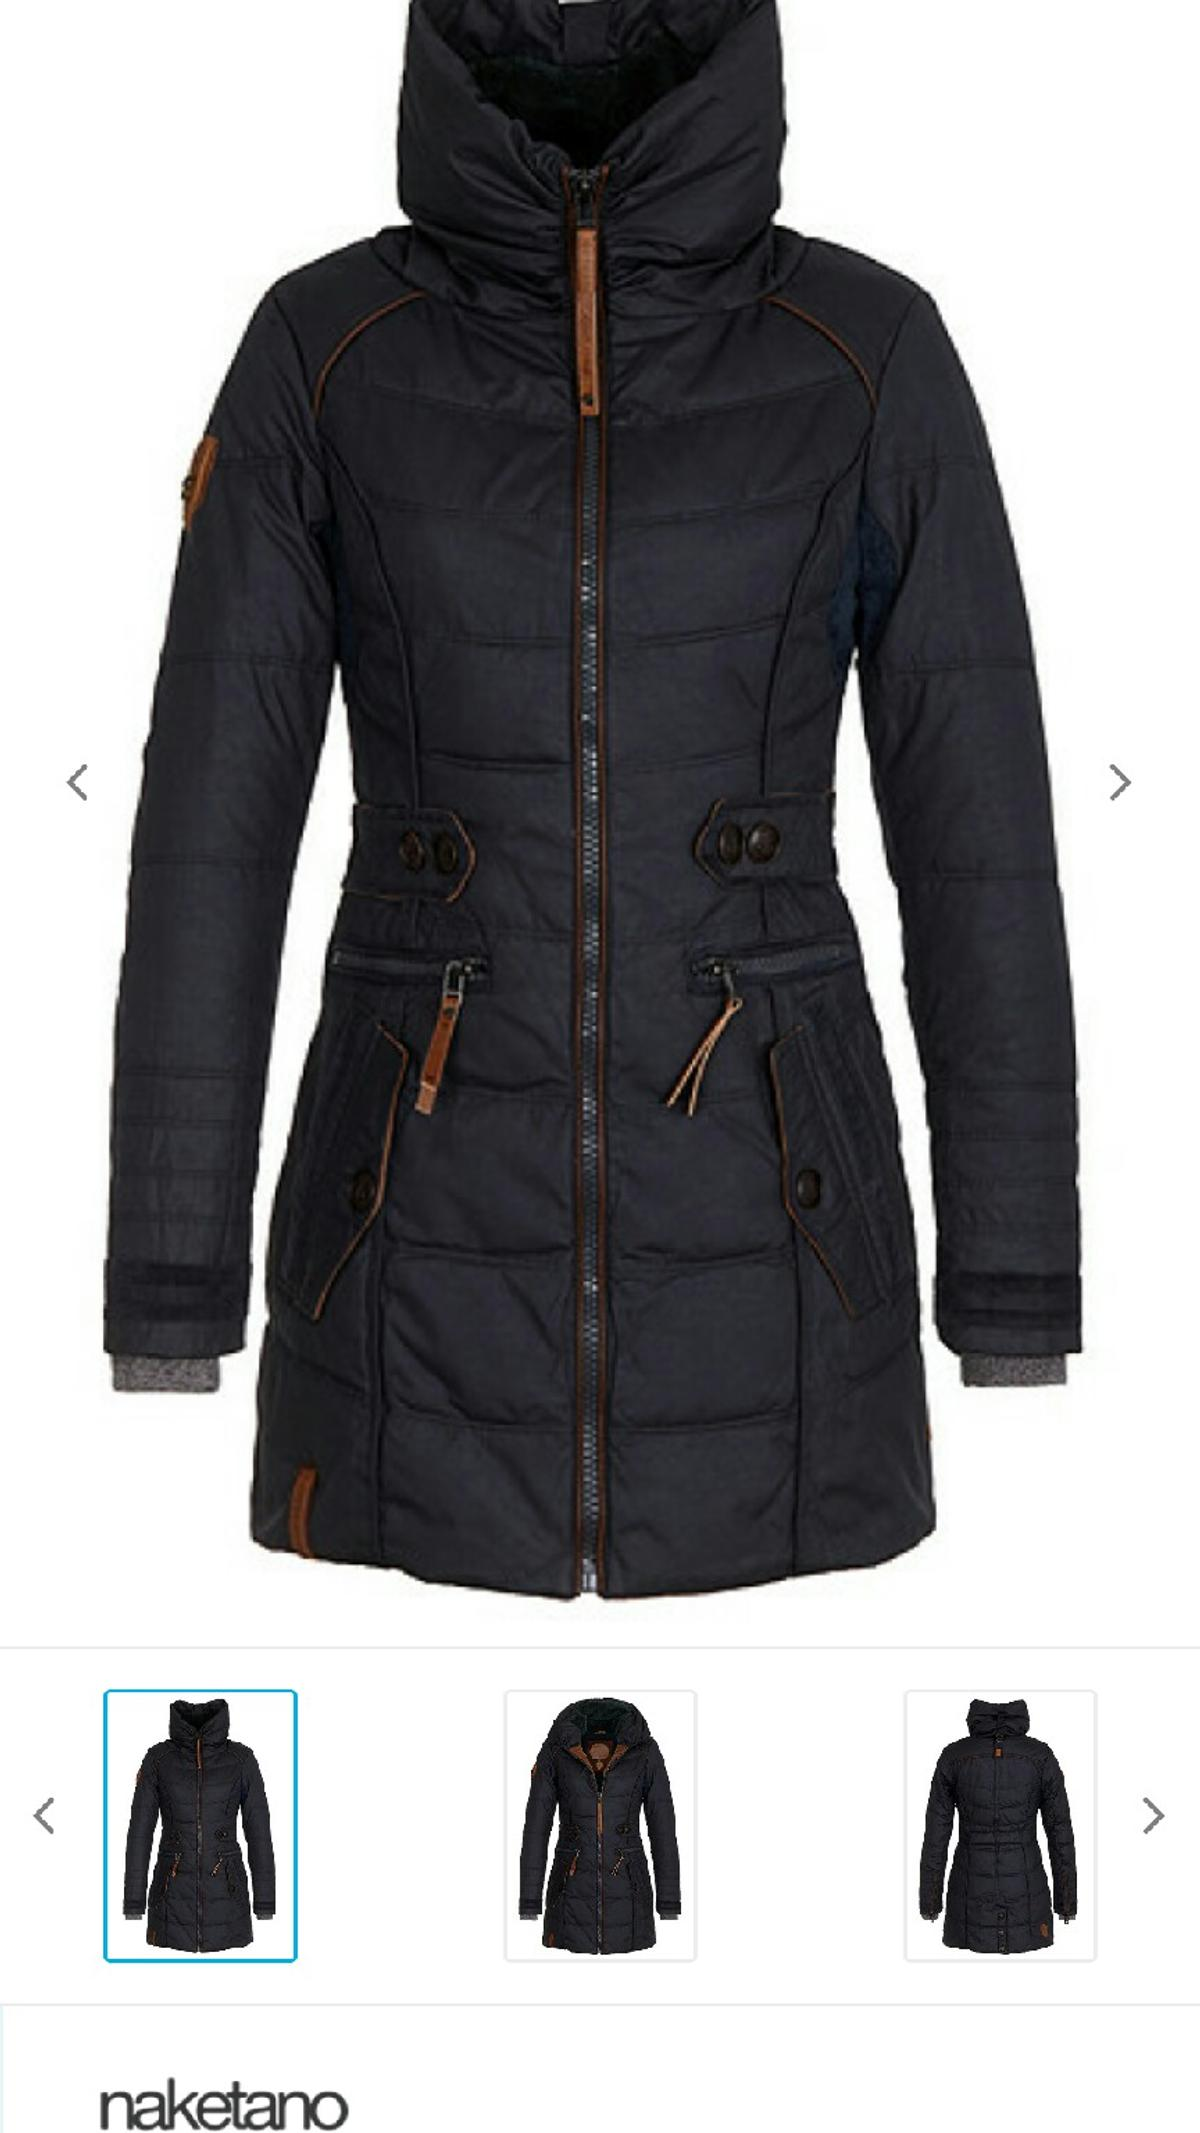 naketano knastrologin jacke in 45326 Essen for €70.00 for